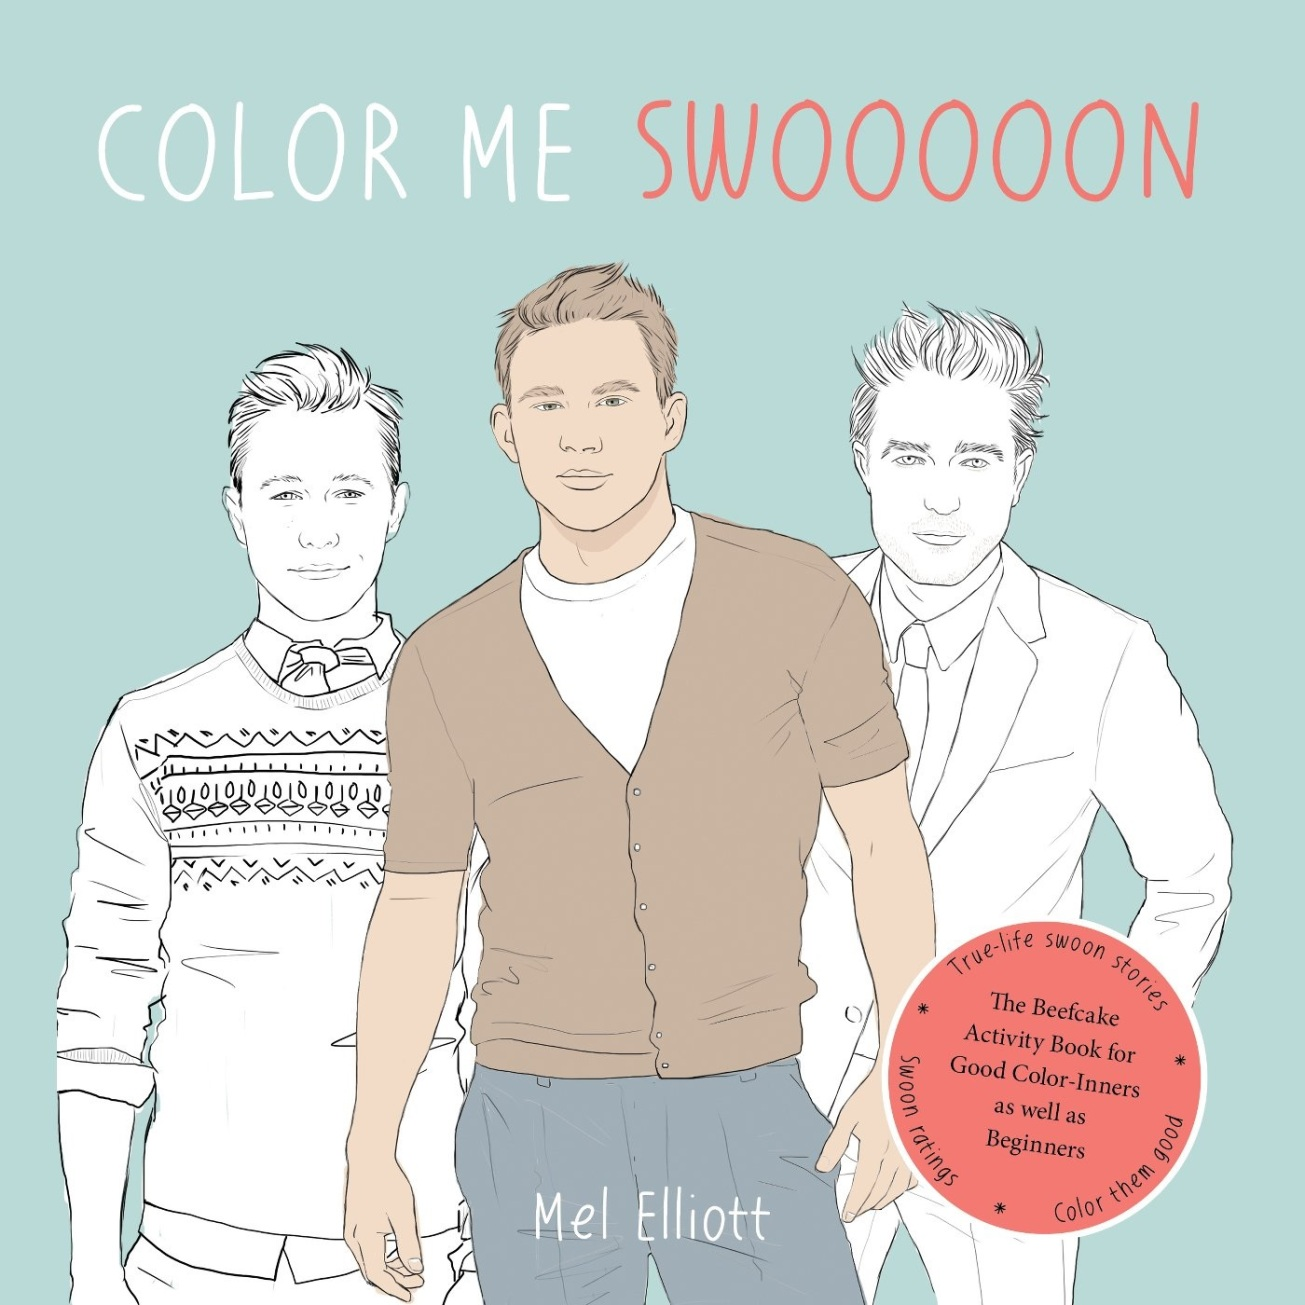 Color Me Swoon: The Beefcake Activity Book for Good Color-Inners as well as Beginners by Mel Elliott, Amazon.ca